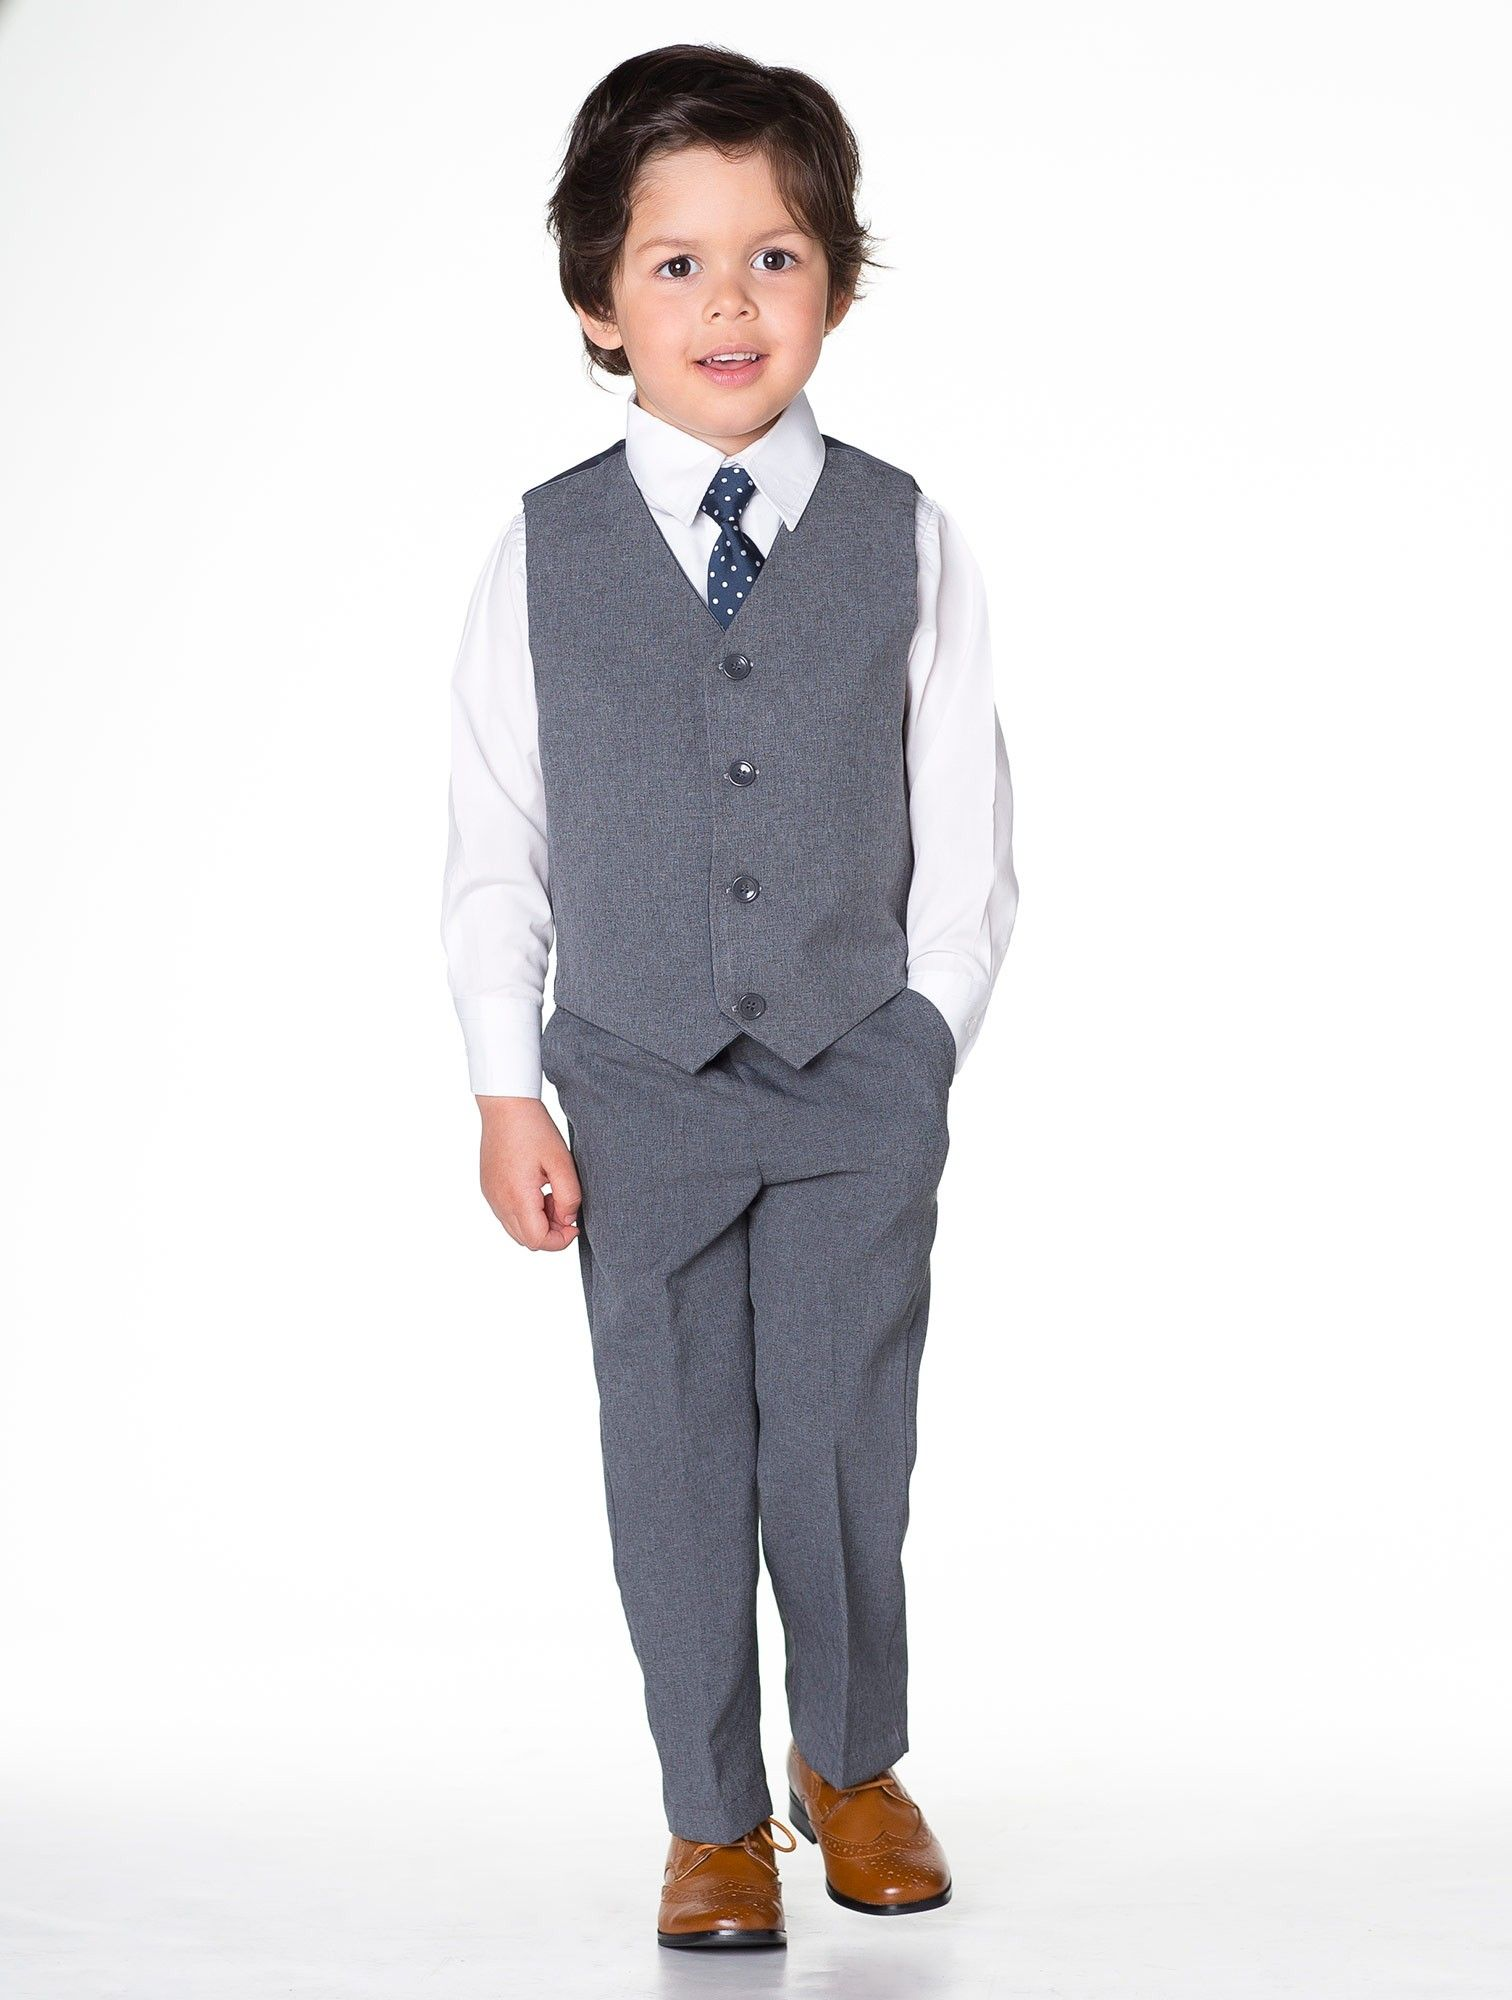 Boys grey suit - Bertie | Boys wedding suits, Wedding suits and ...